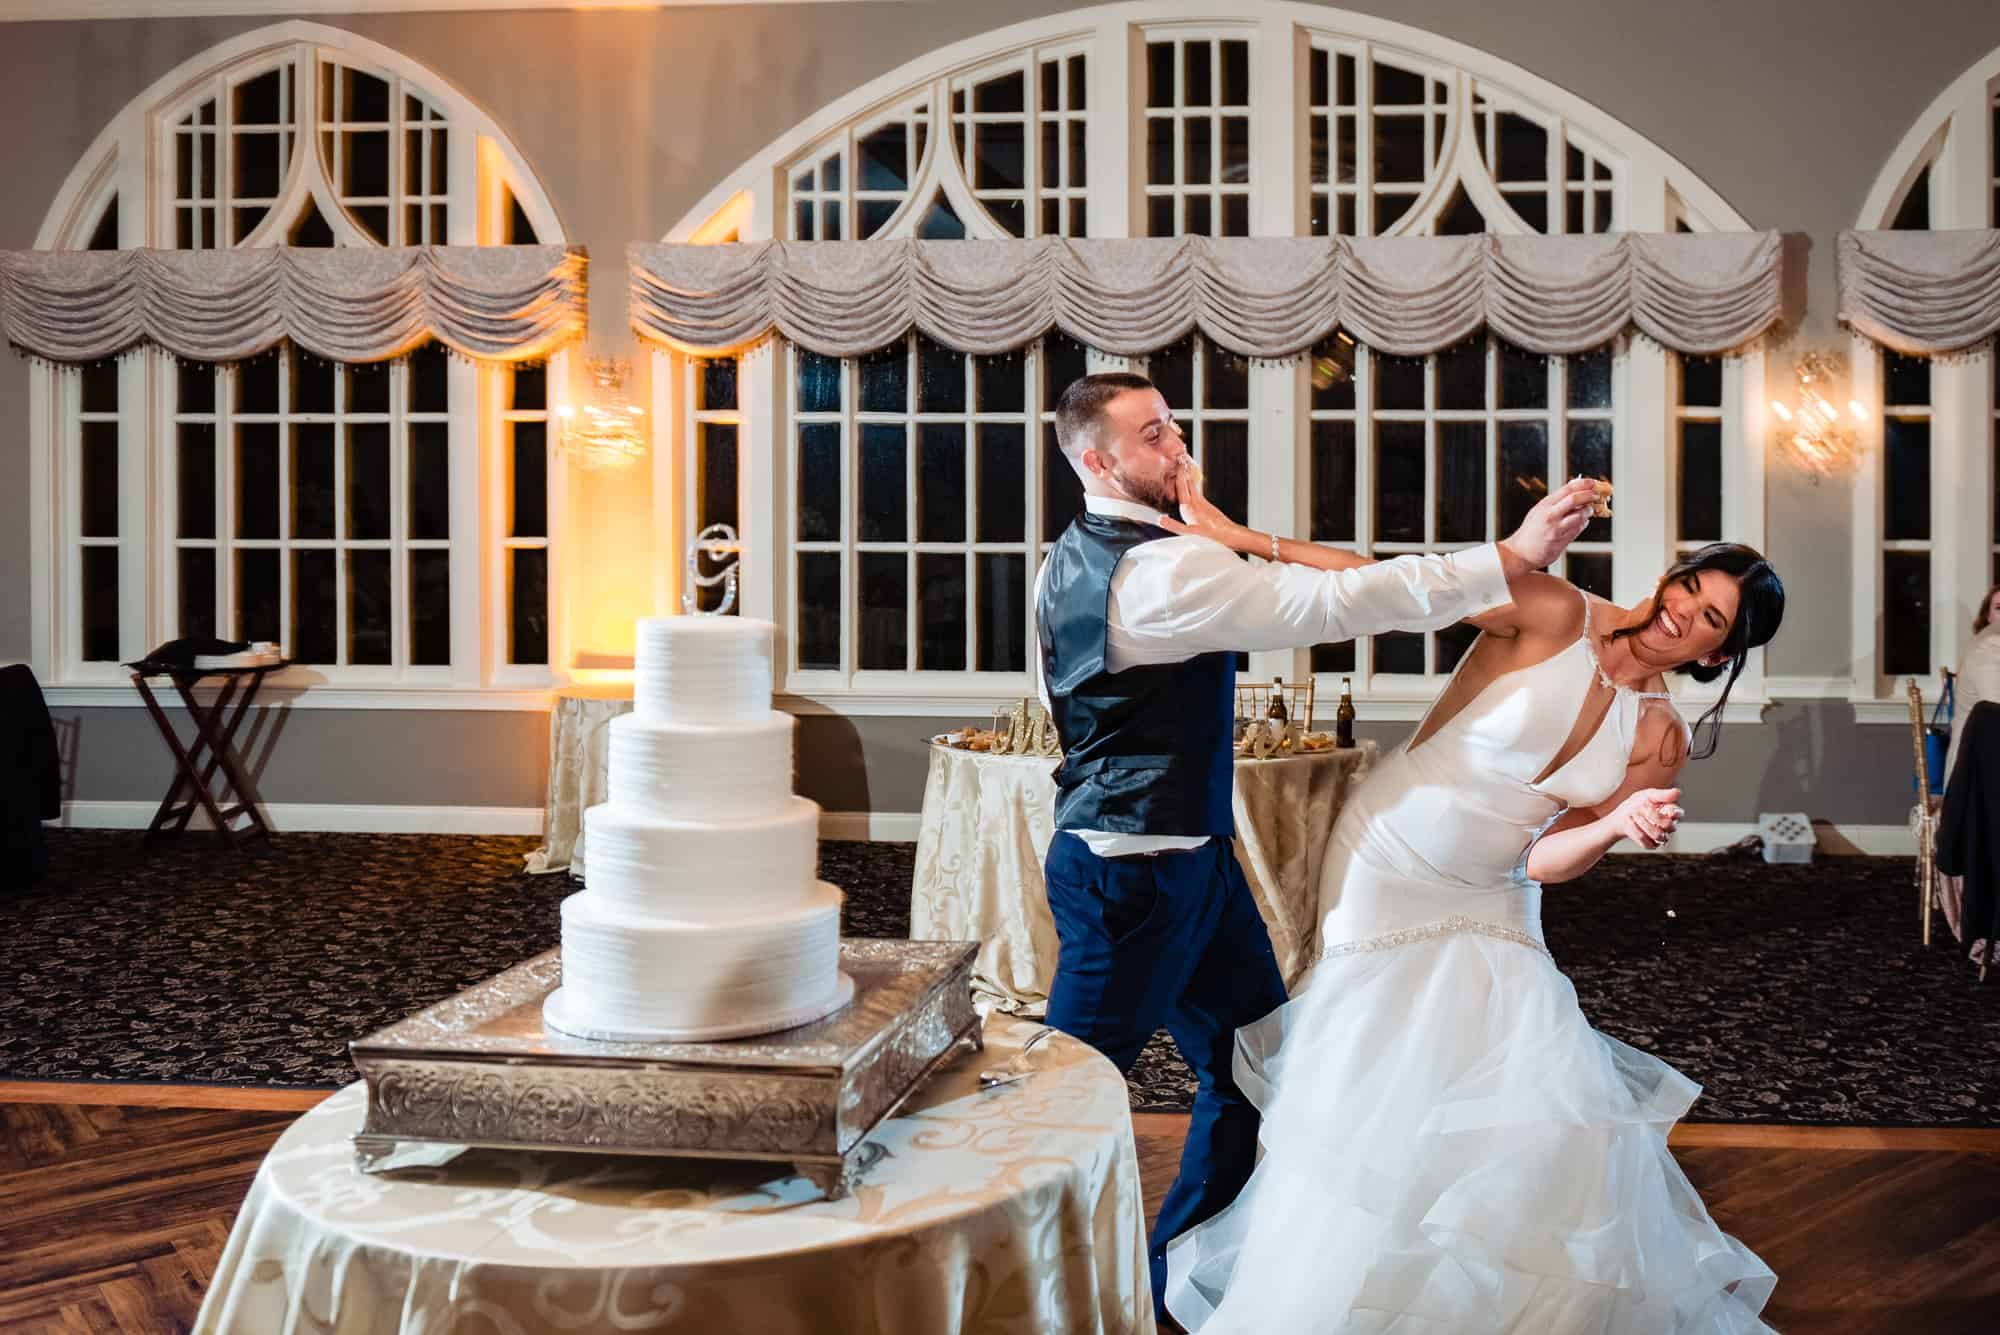 wedding day, bride and groom smashing cake in each others faces